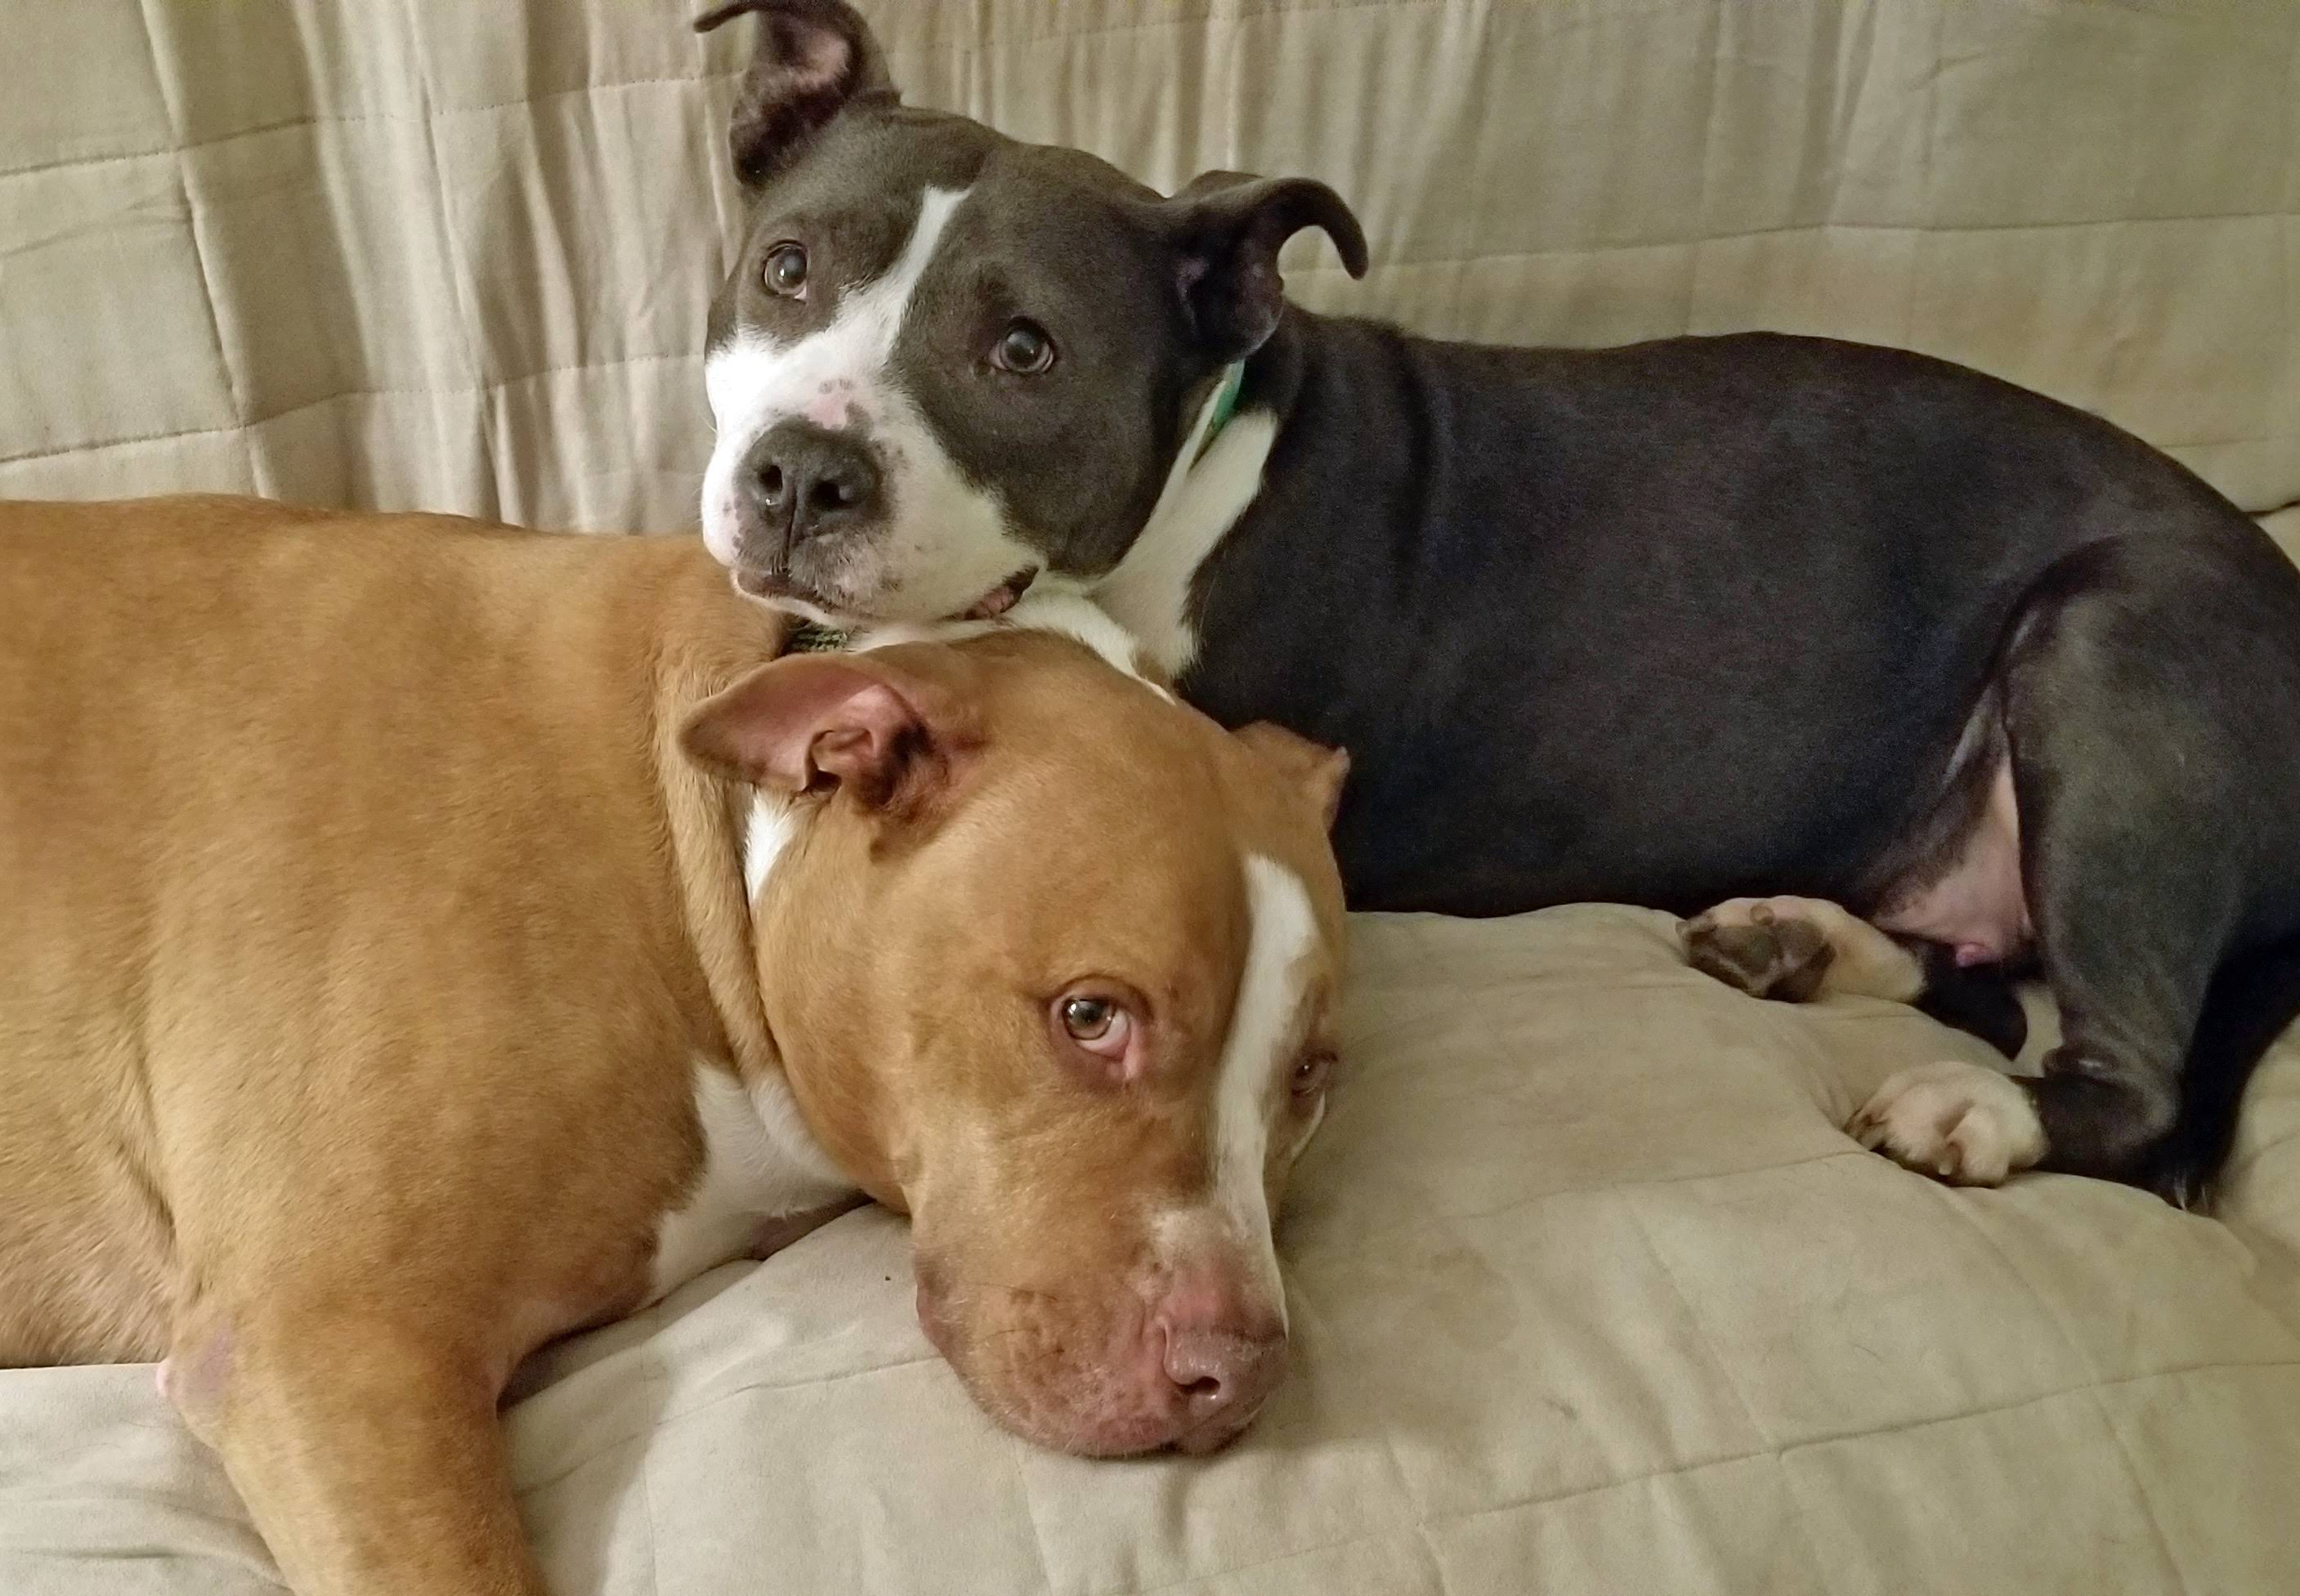 Coco Jellybean the Adoptable Pit Bull mix